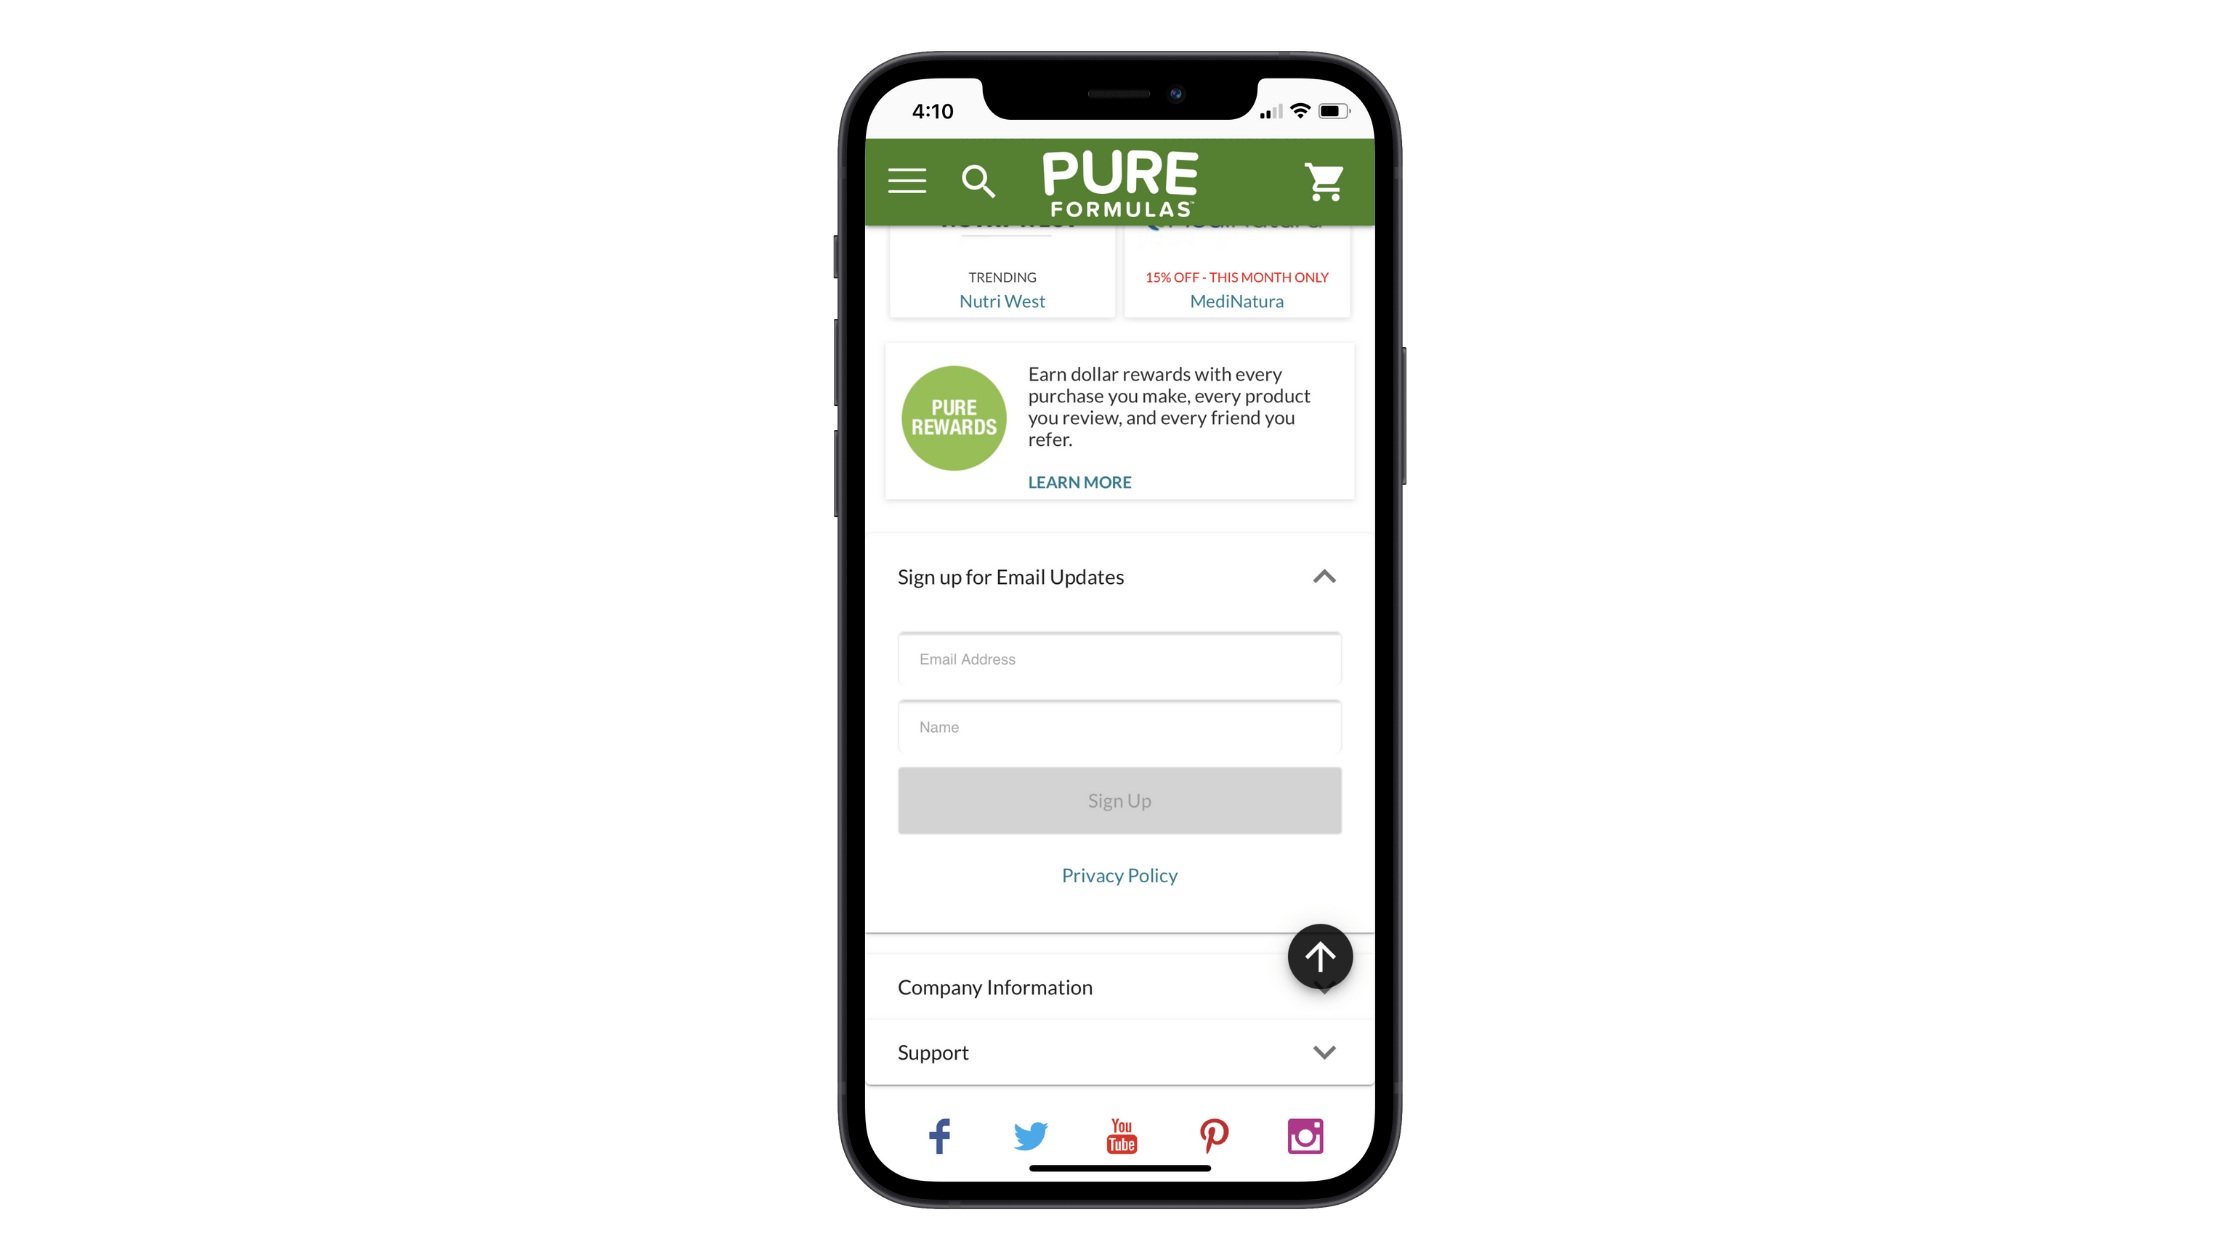 An email subscription form on the Pure Formulas site asks users to fill in their Email Address and Name to sign up.